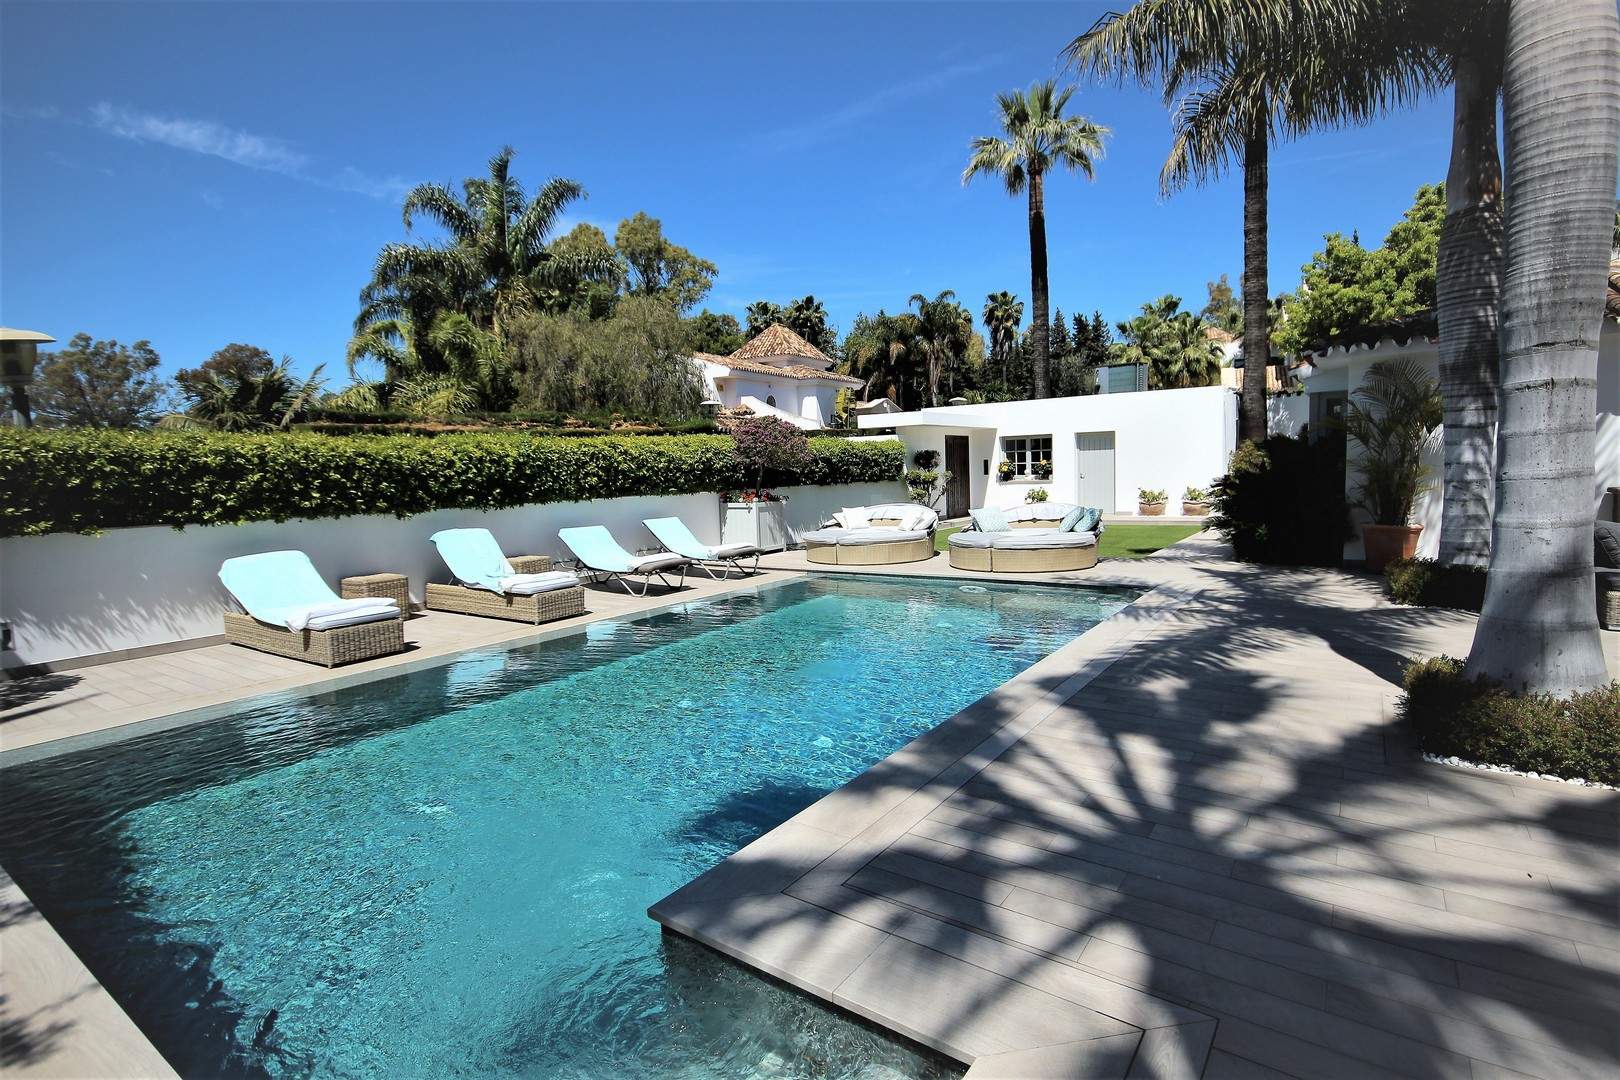 AH2417 - 5 Bed Marbella Club Villa Walking To Beach|Marbella